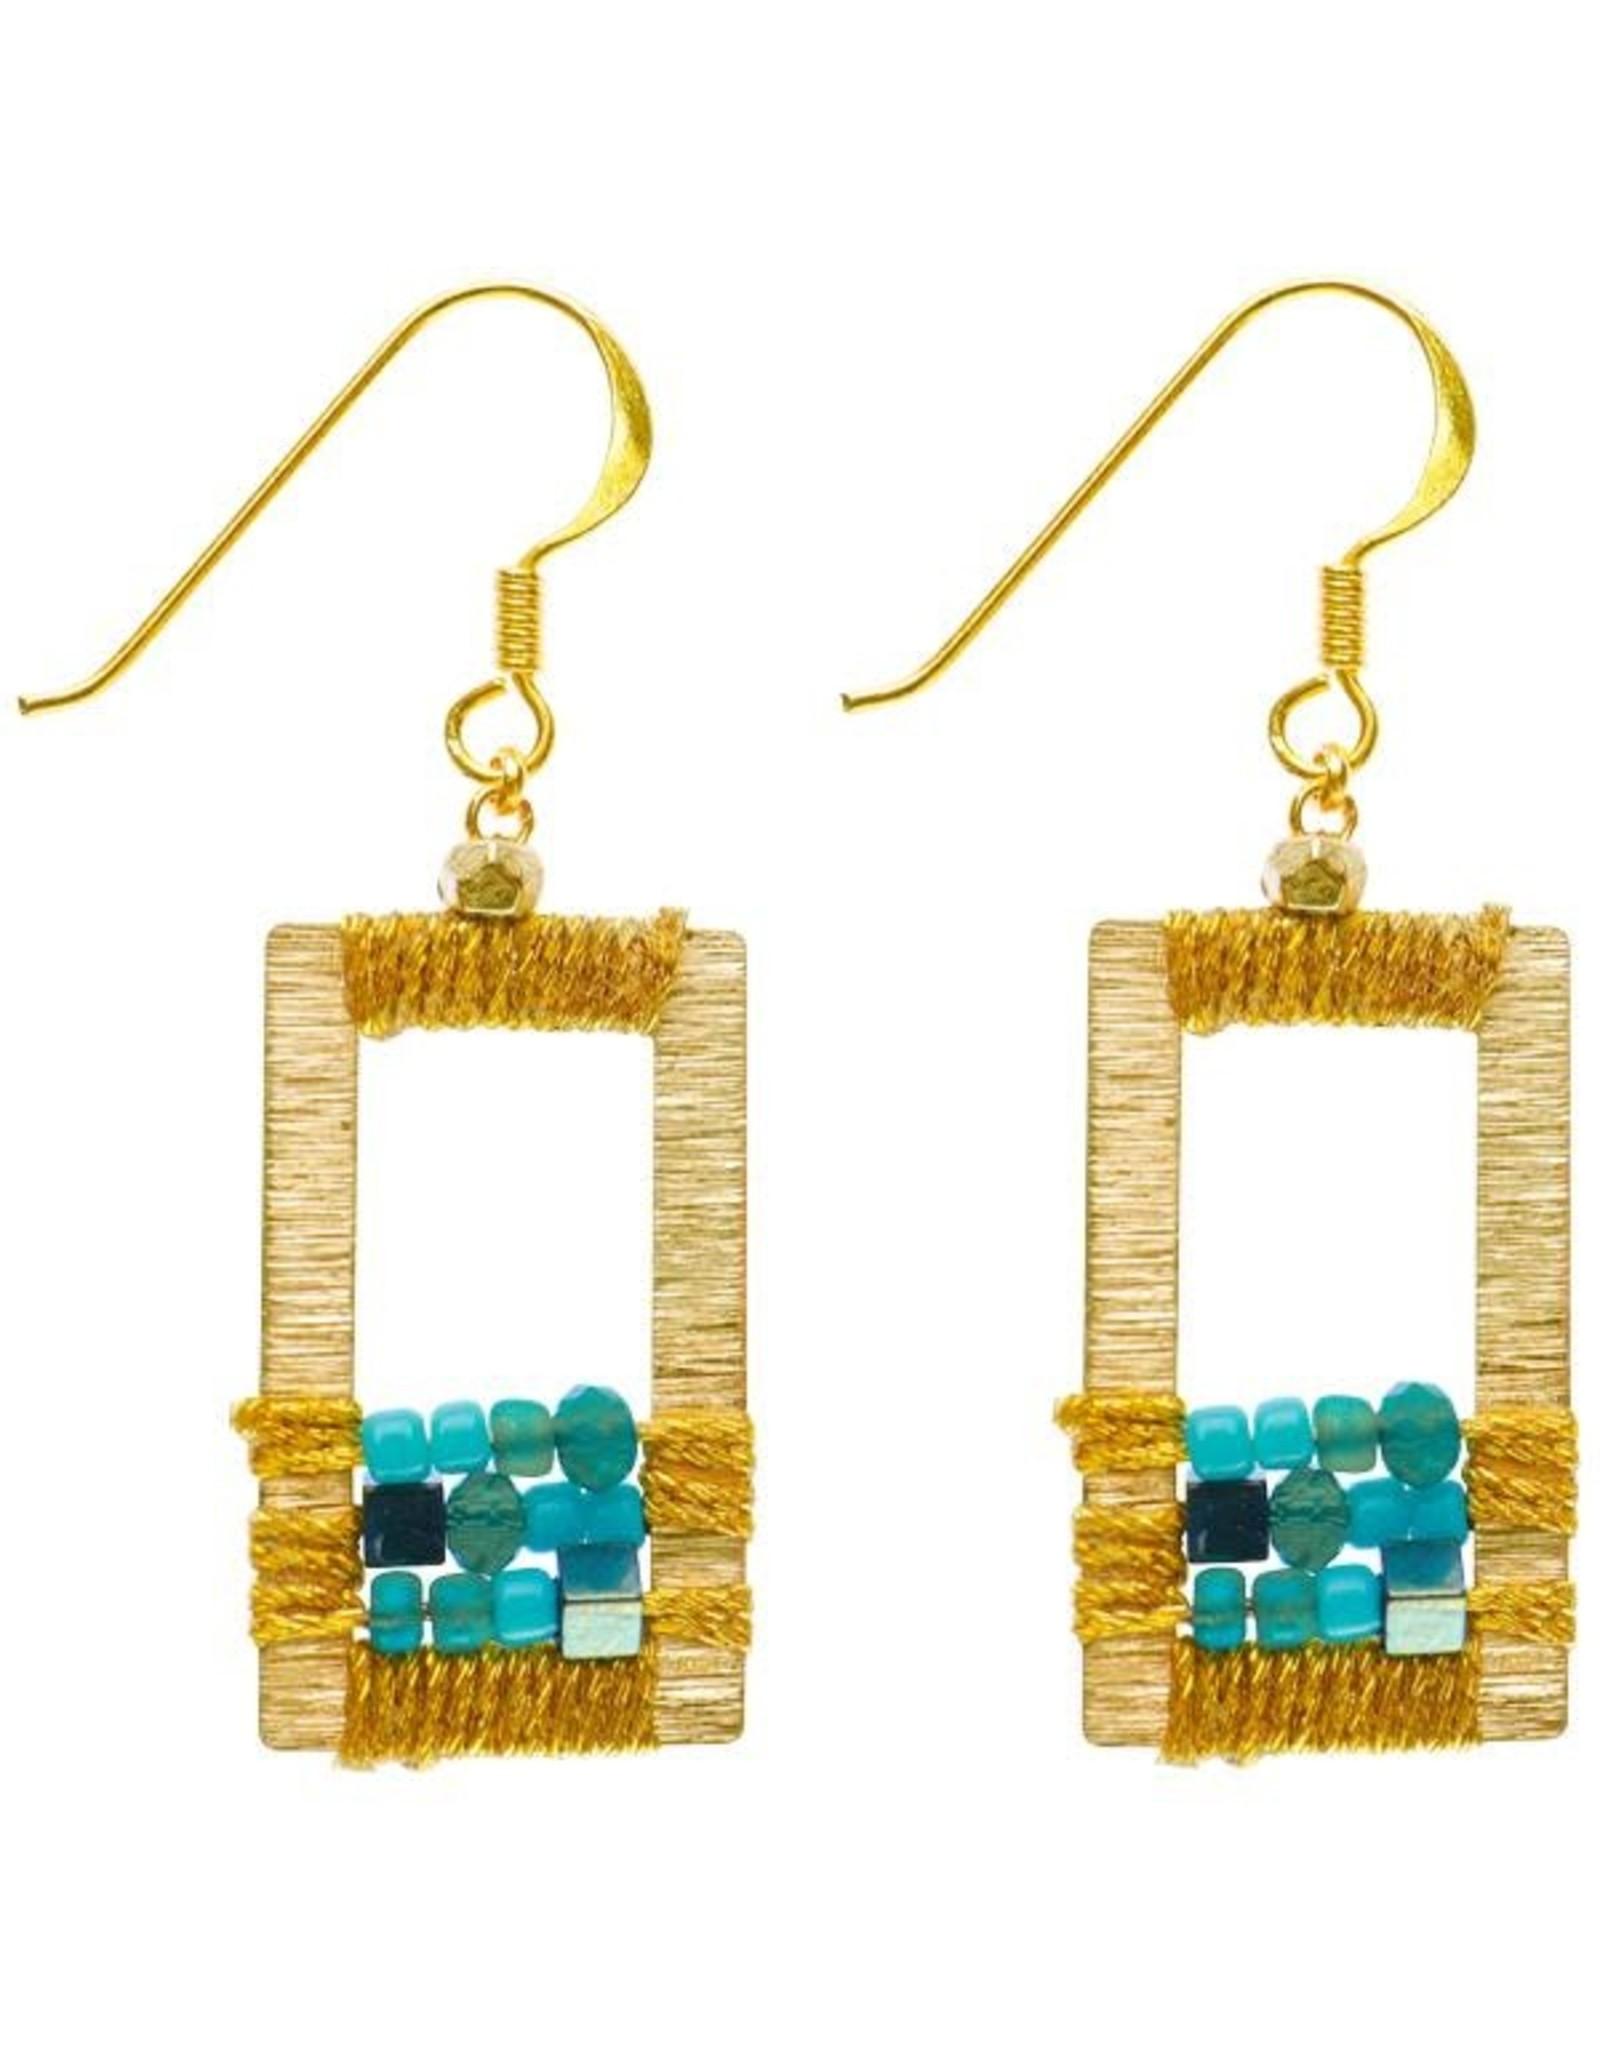 Rose Draped Geometric Earrings, Turquoise